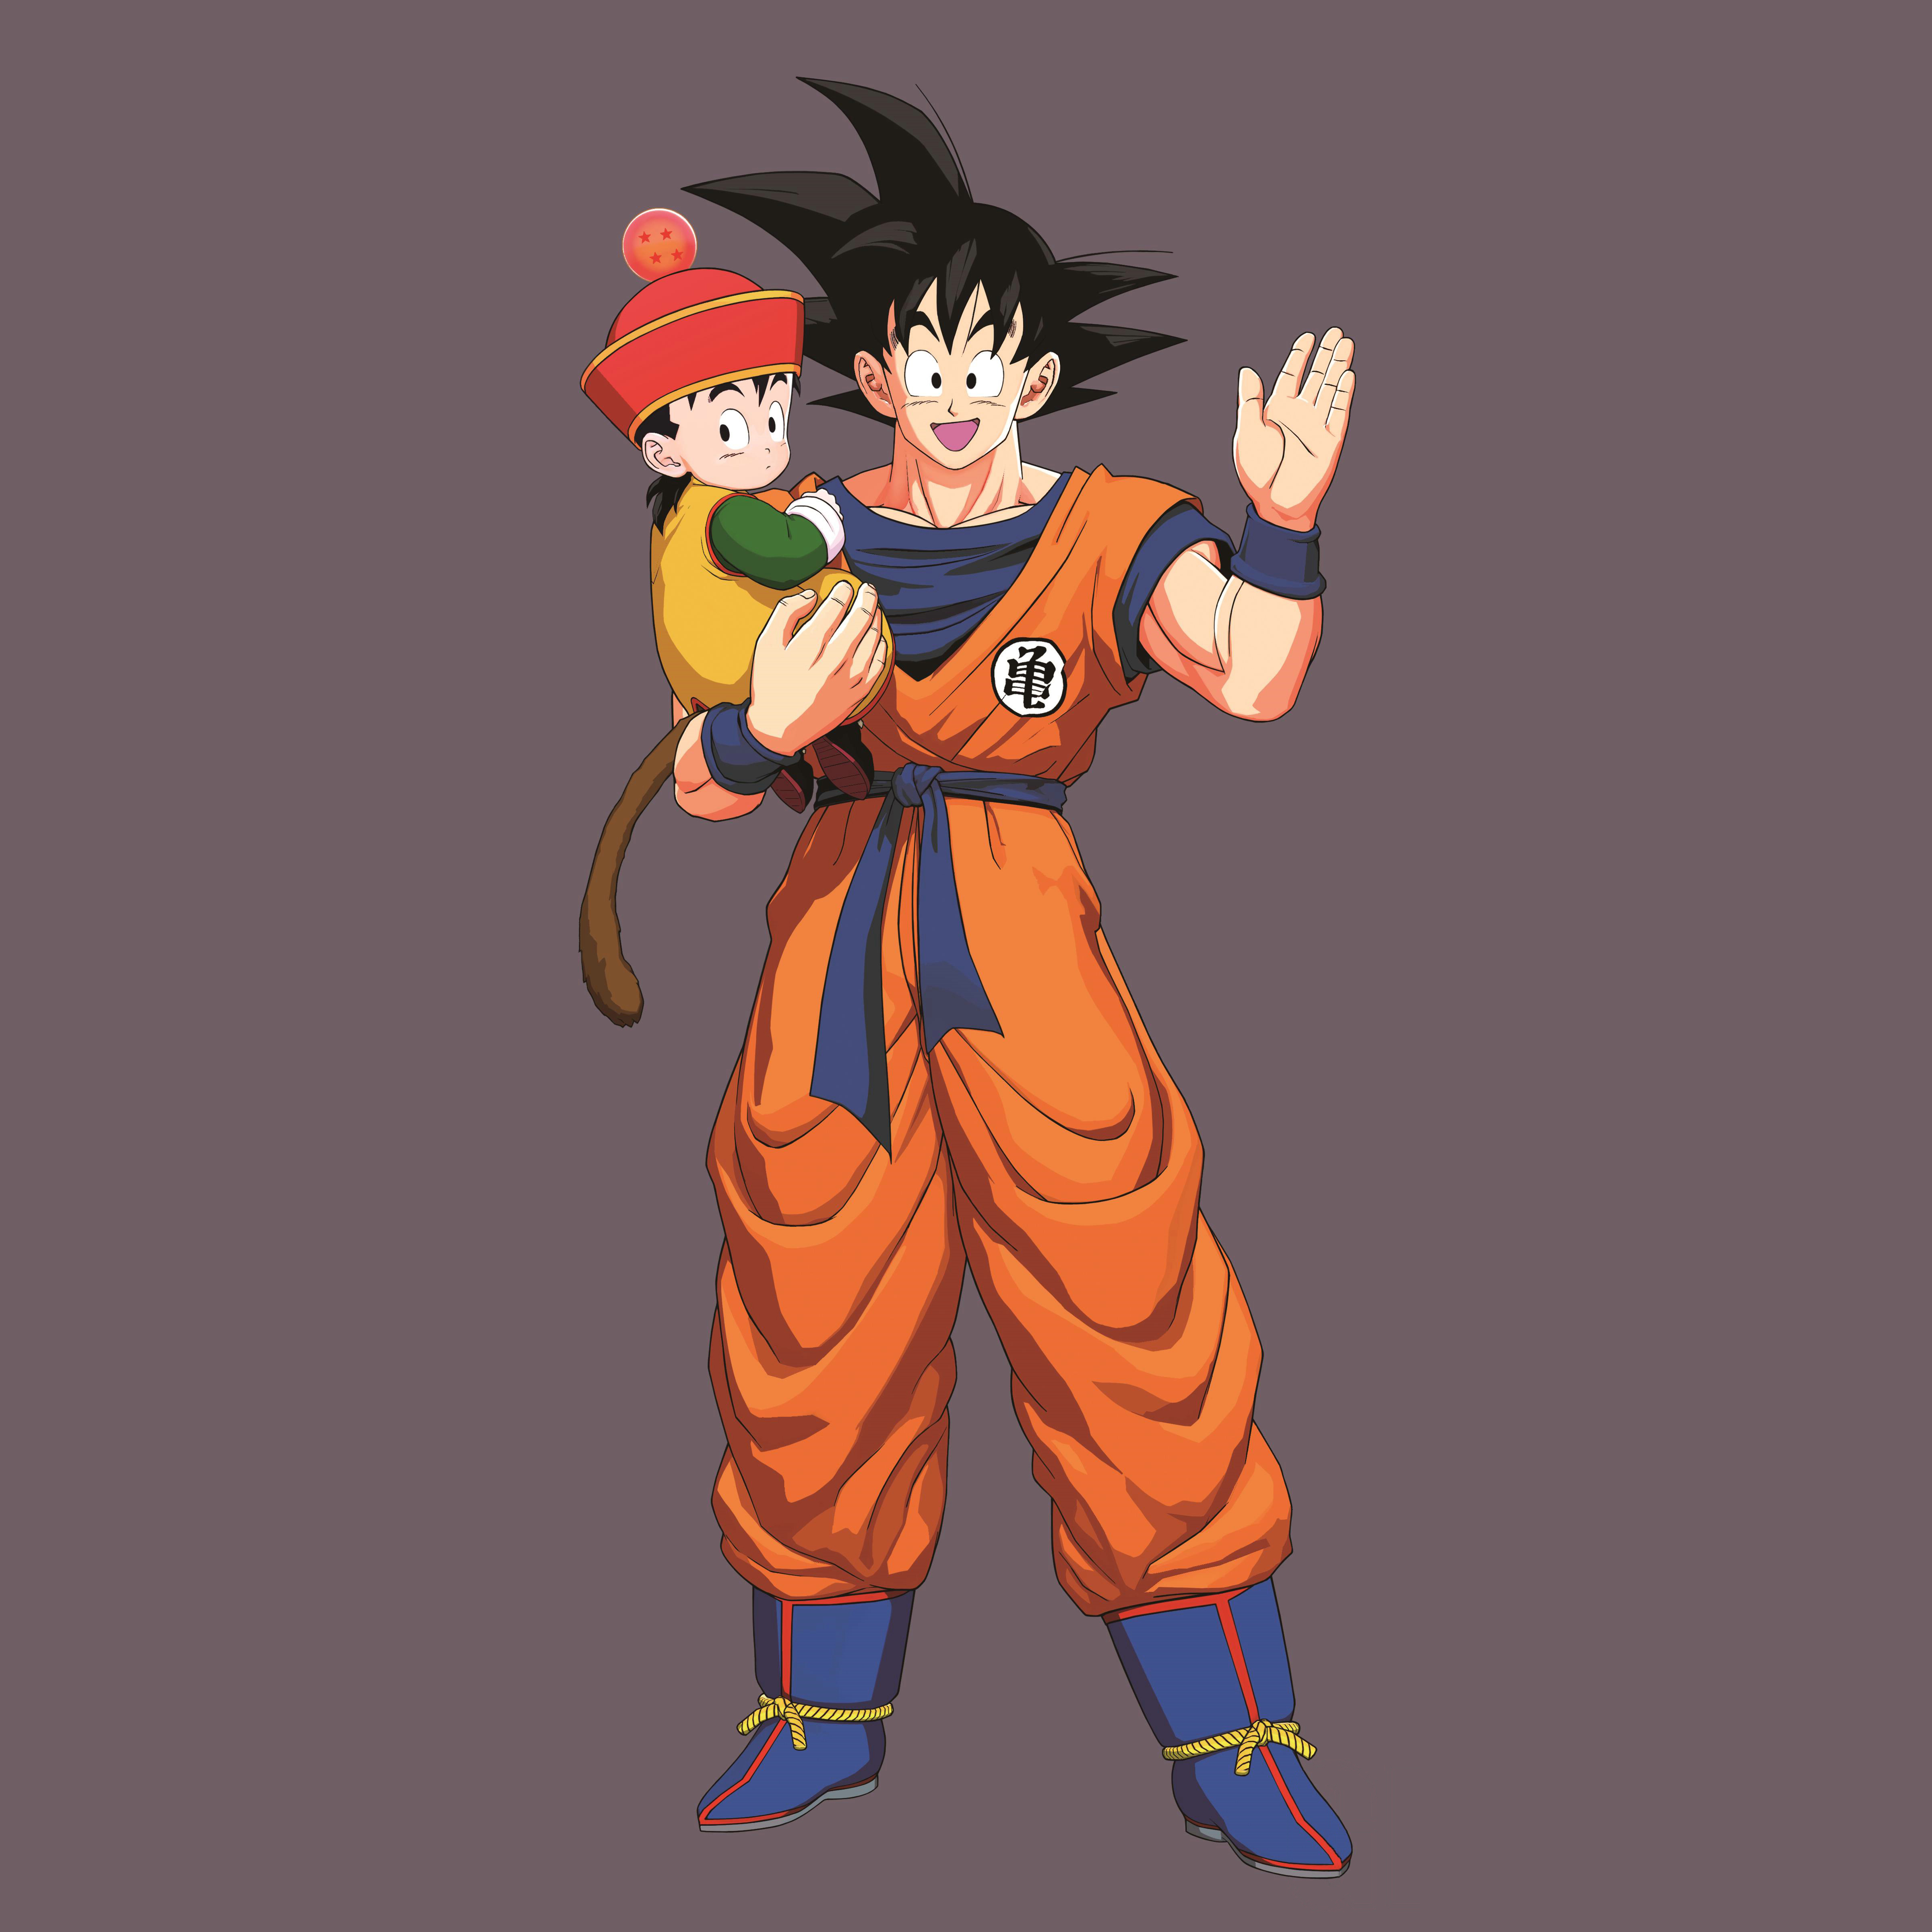 1080x2232 Dragon Ball Z Kakarot Game 1080x2232 Resolution Wallpaper Hd Games 4k Wallpapers Images Photos And Background